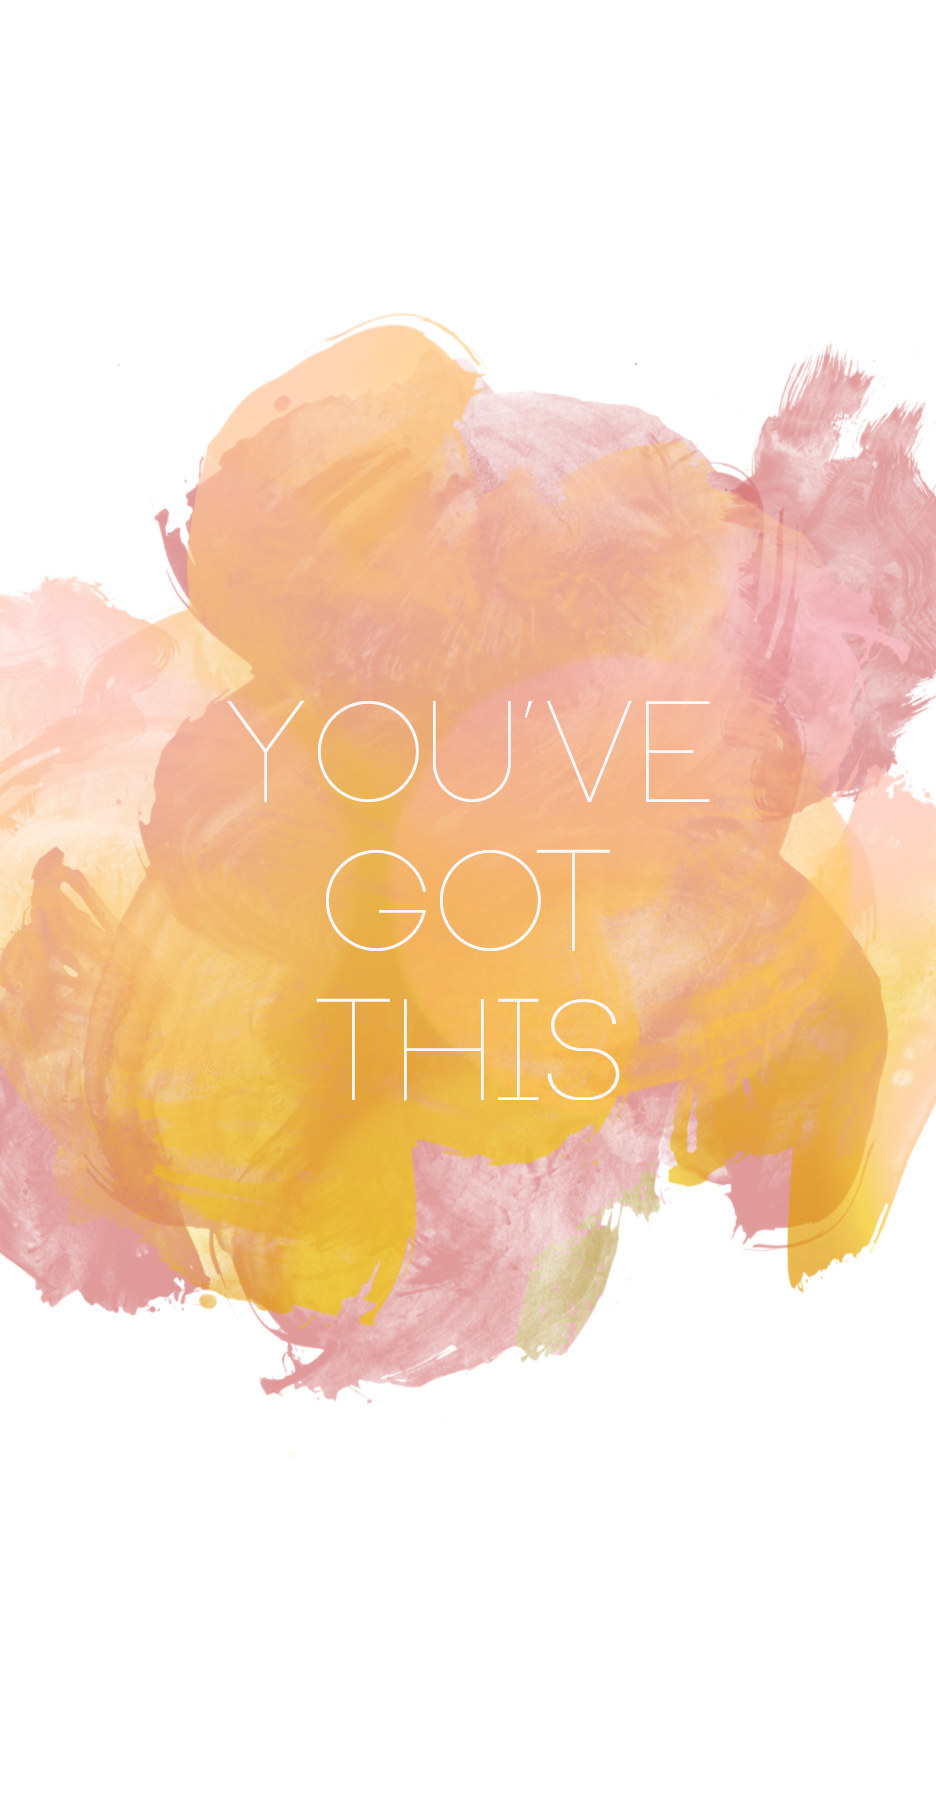 27 Free Phone Backgrounds For Anyone Who Needs A Little Pep Talk